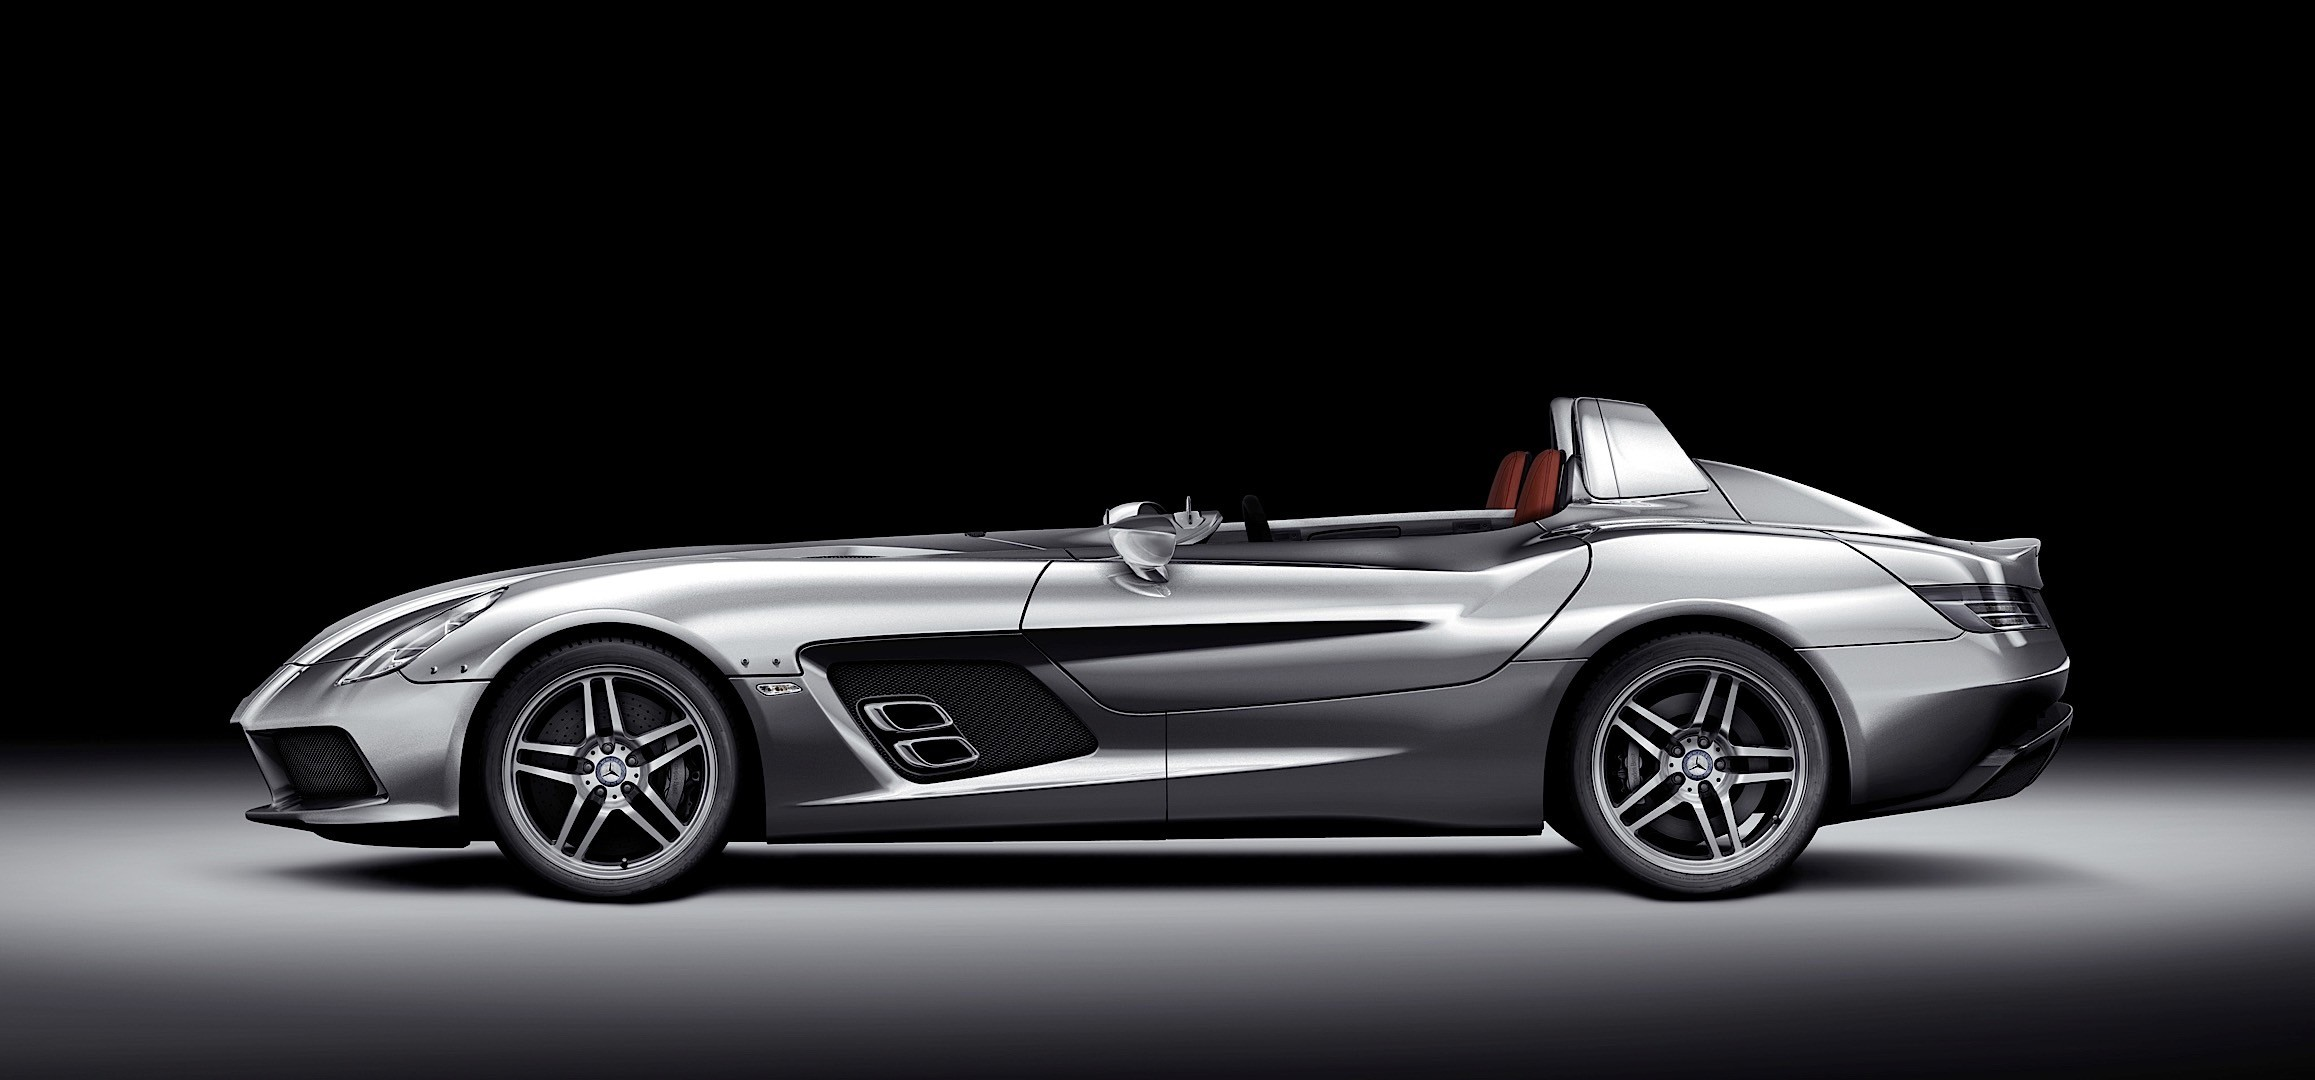 MERCEDES BENZ SLR Stirling Moss 2009 - 2009